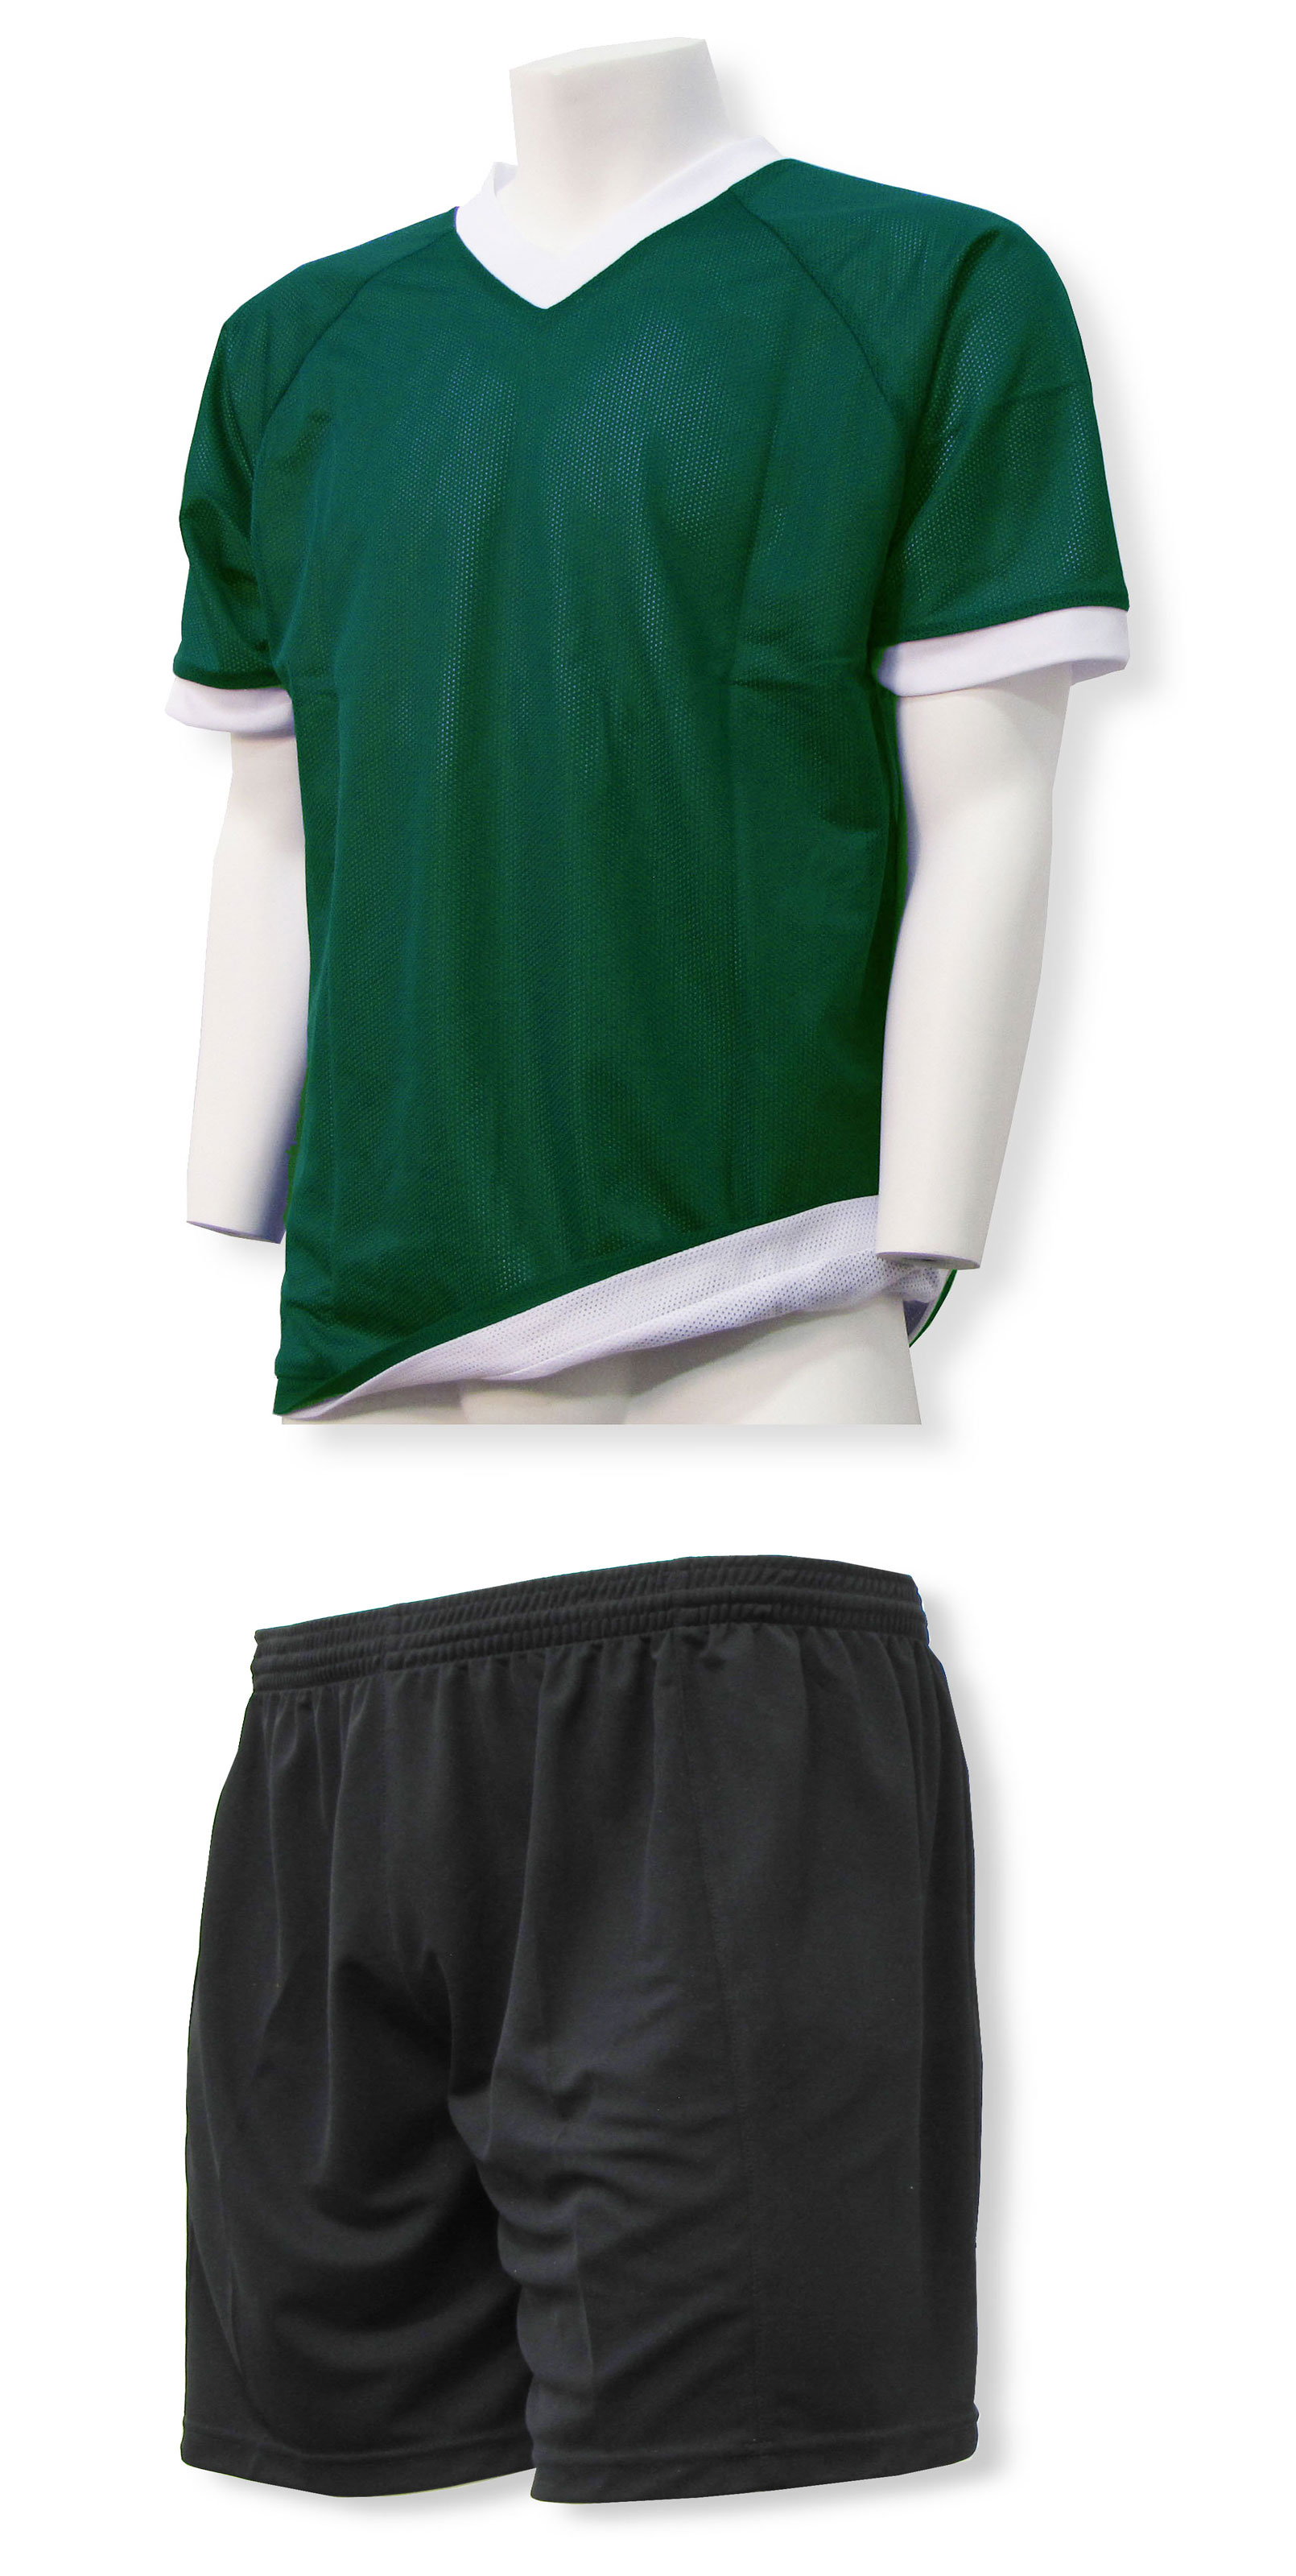 Reversible sports uniform jersey in forest with black shorts by Code Four Athletics